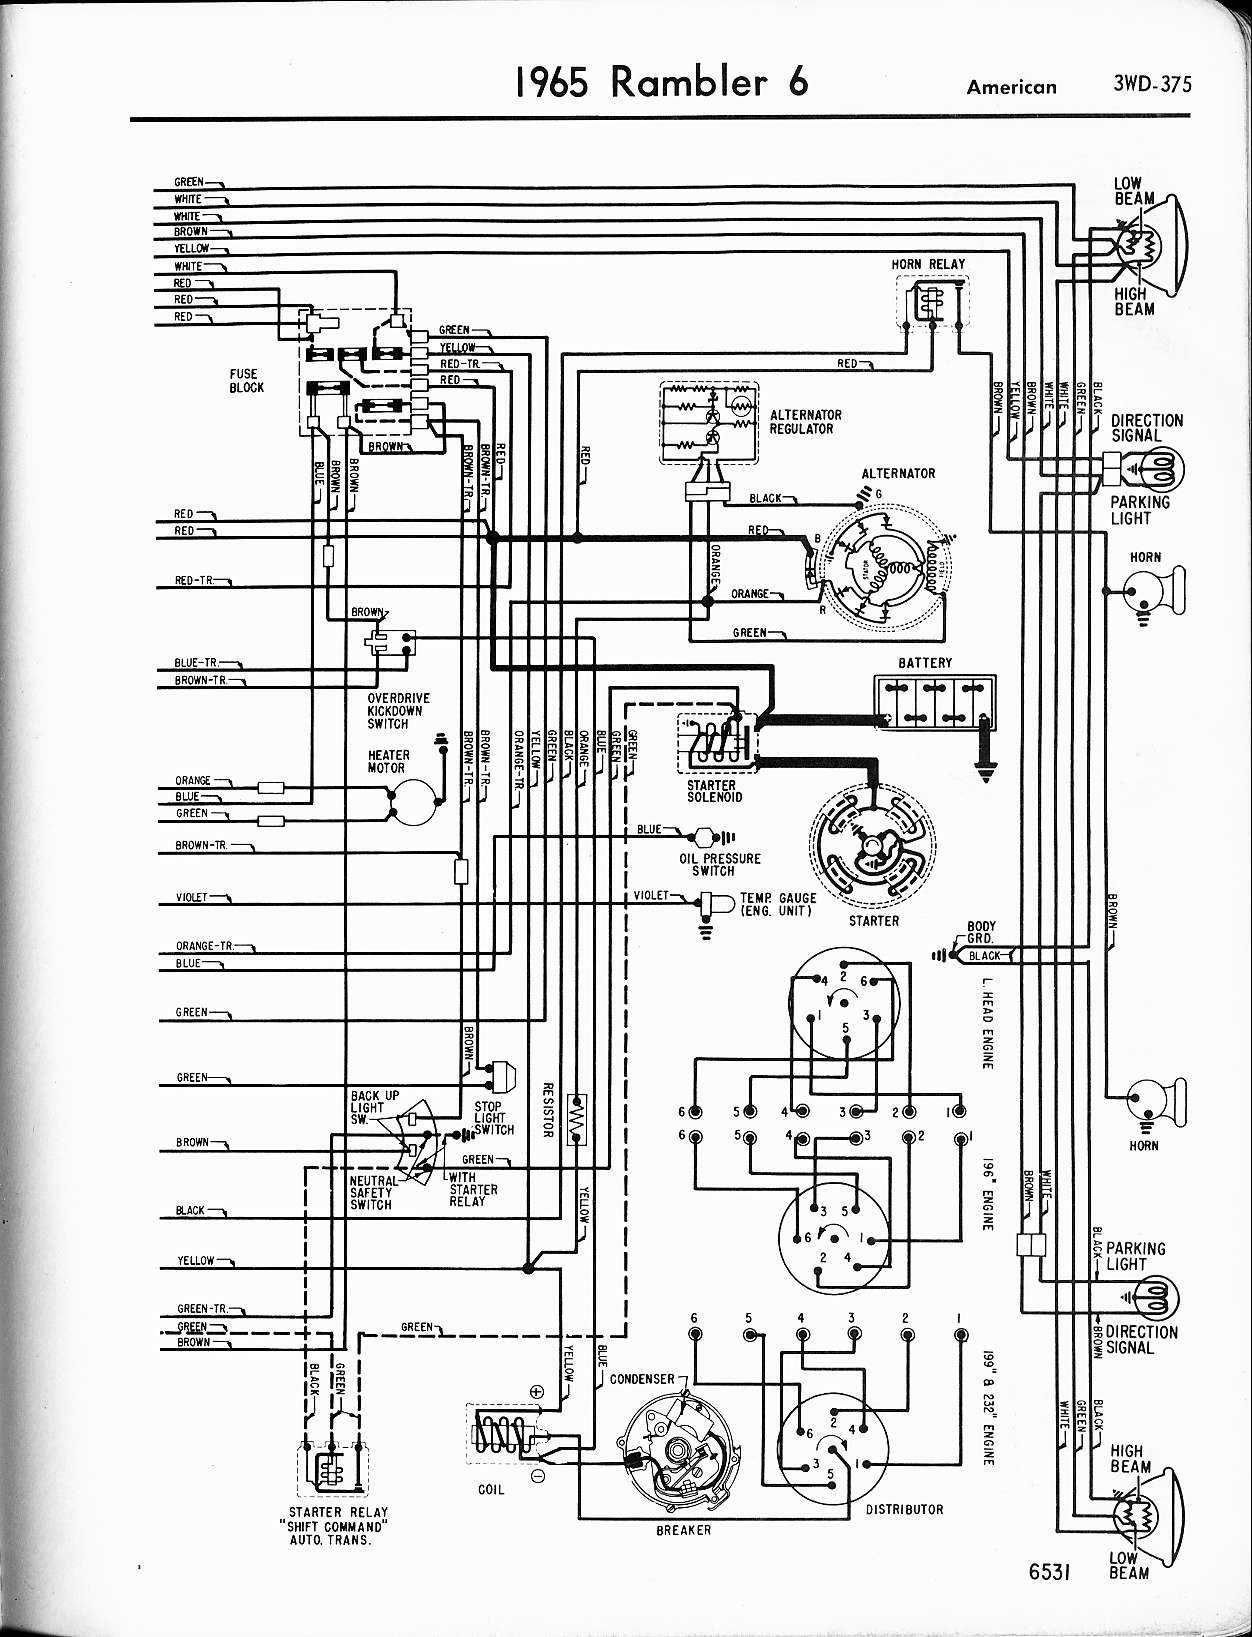 sa 200 electronic ignition wiring diagram